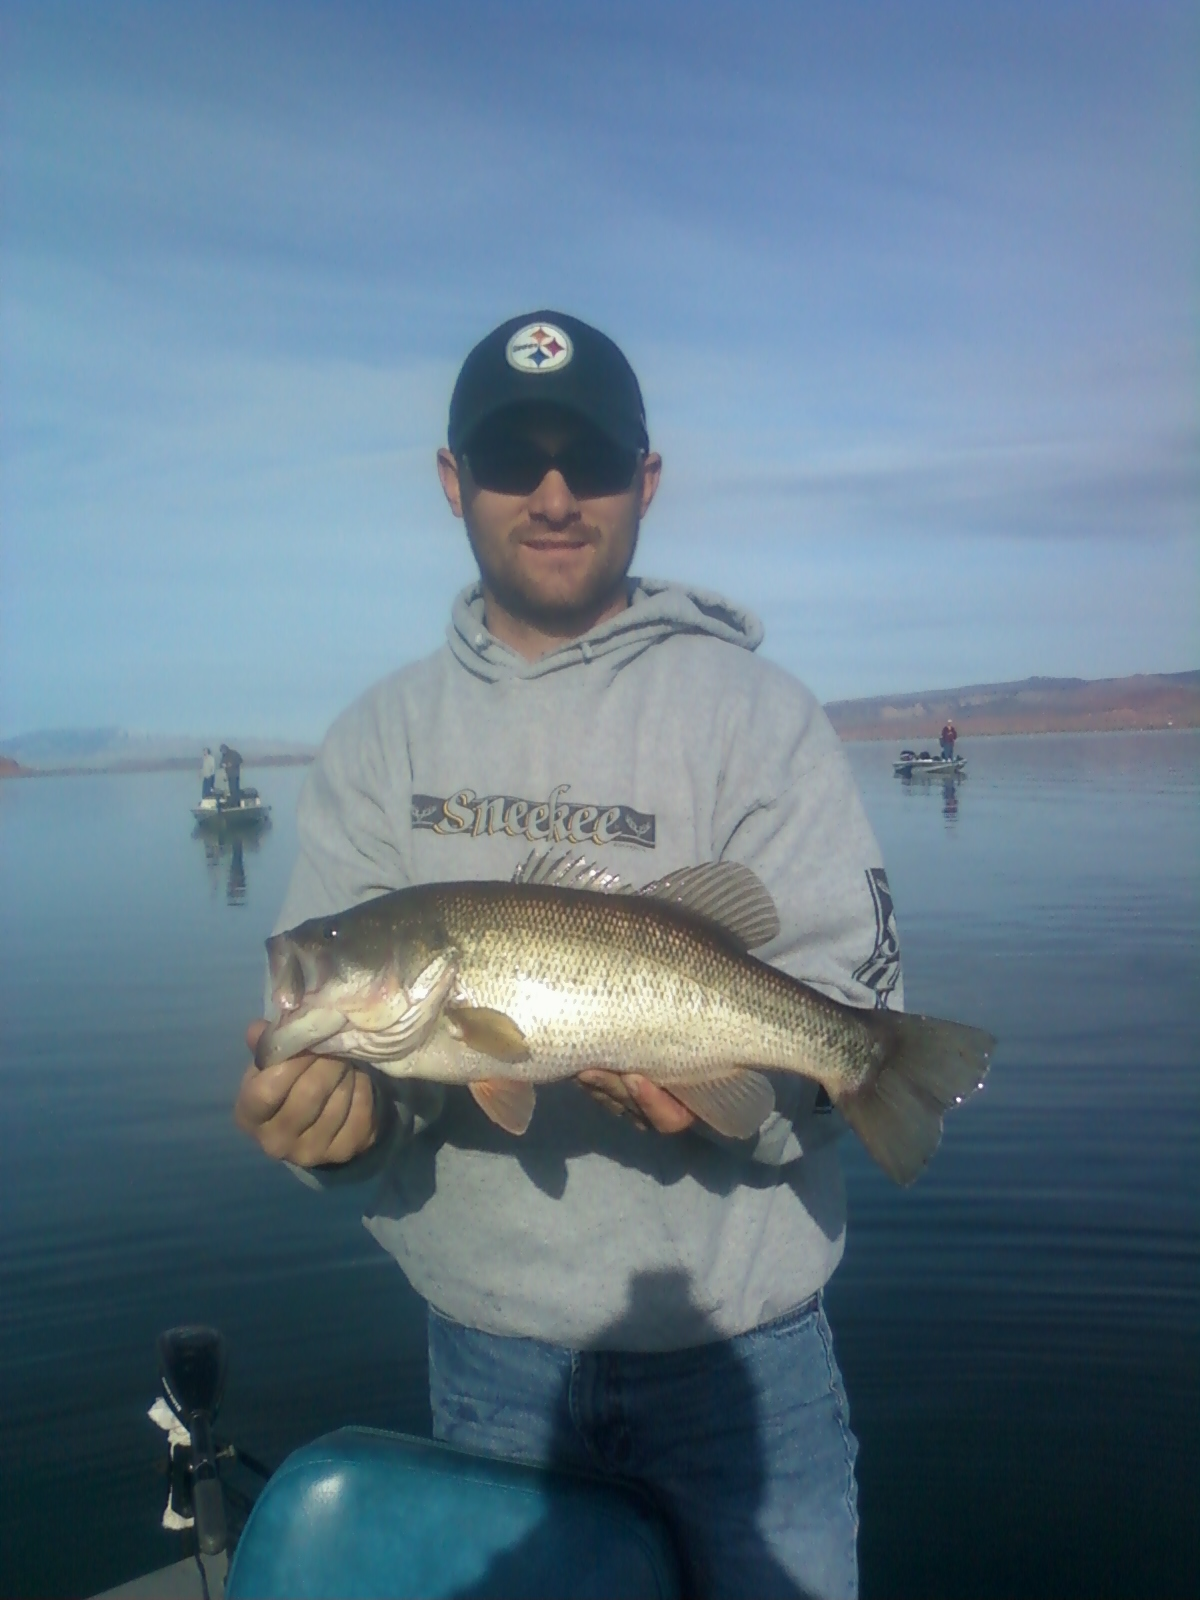 Southern utah fishing january 2012 for Sand hollow fishing report